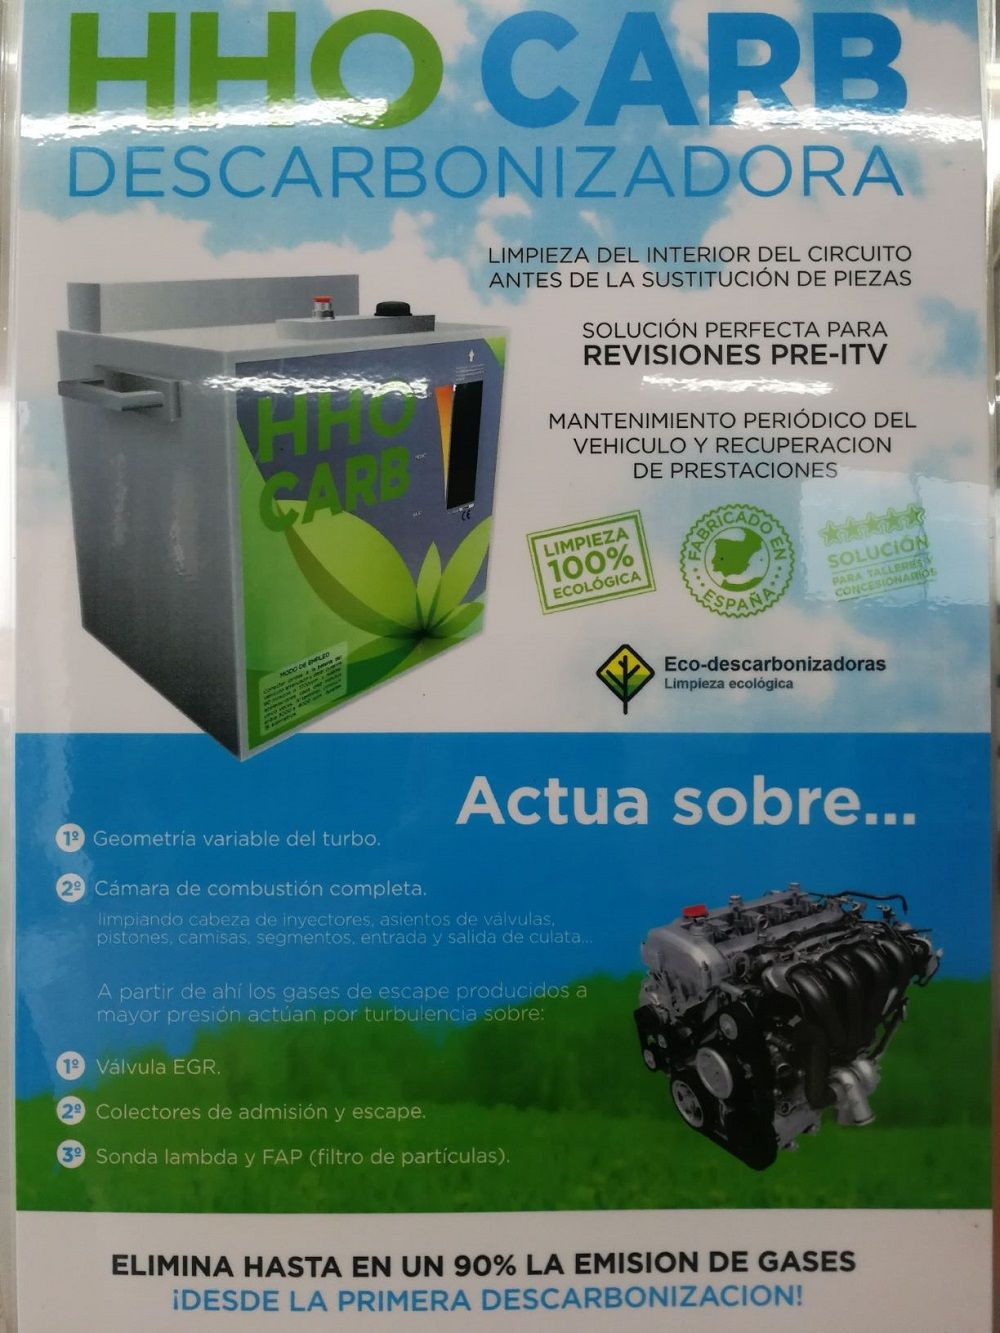 DESCARBONIZADORA HHO CARB